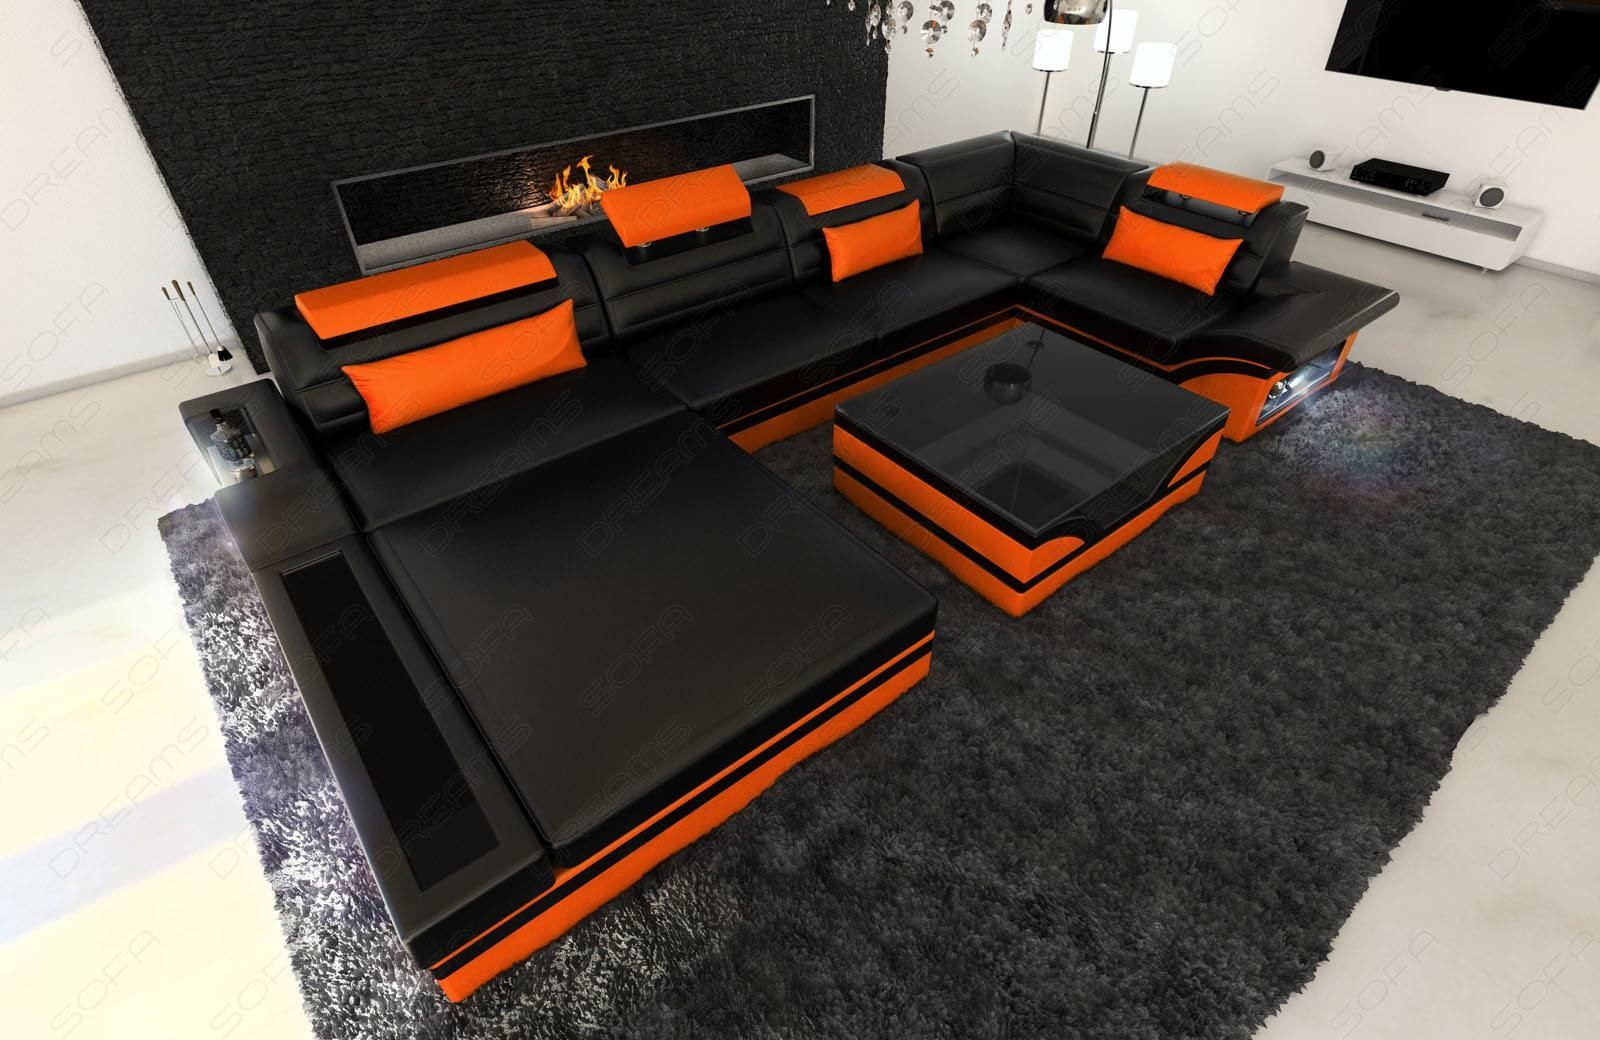 Design Leather Sofa Orlando with LED Lights